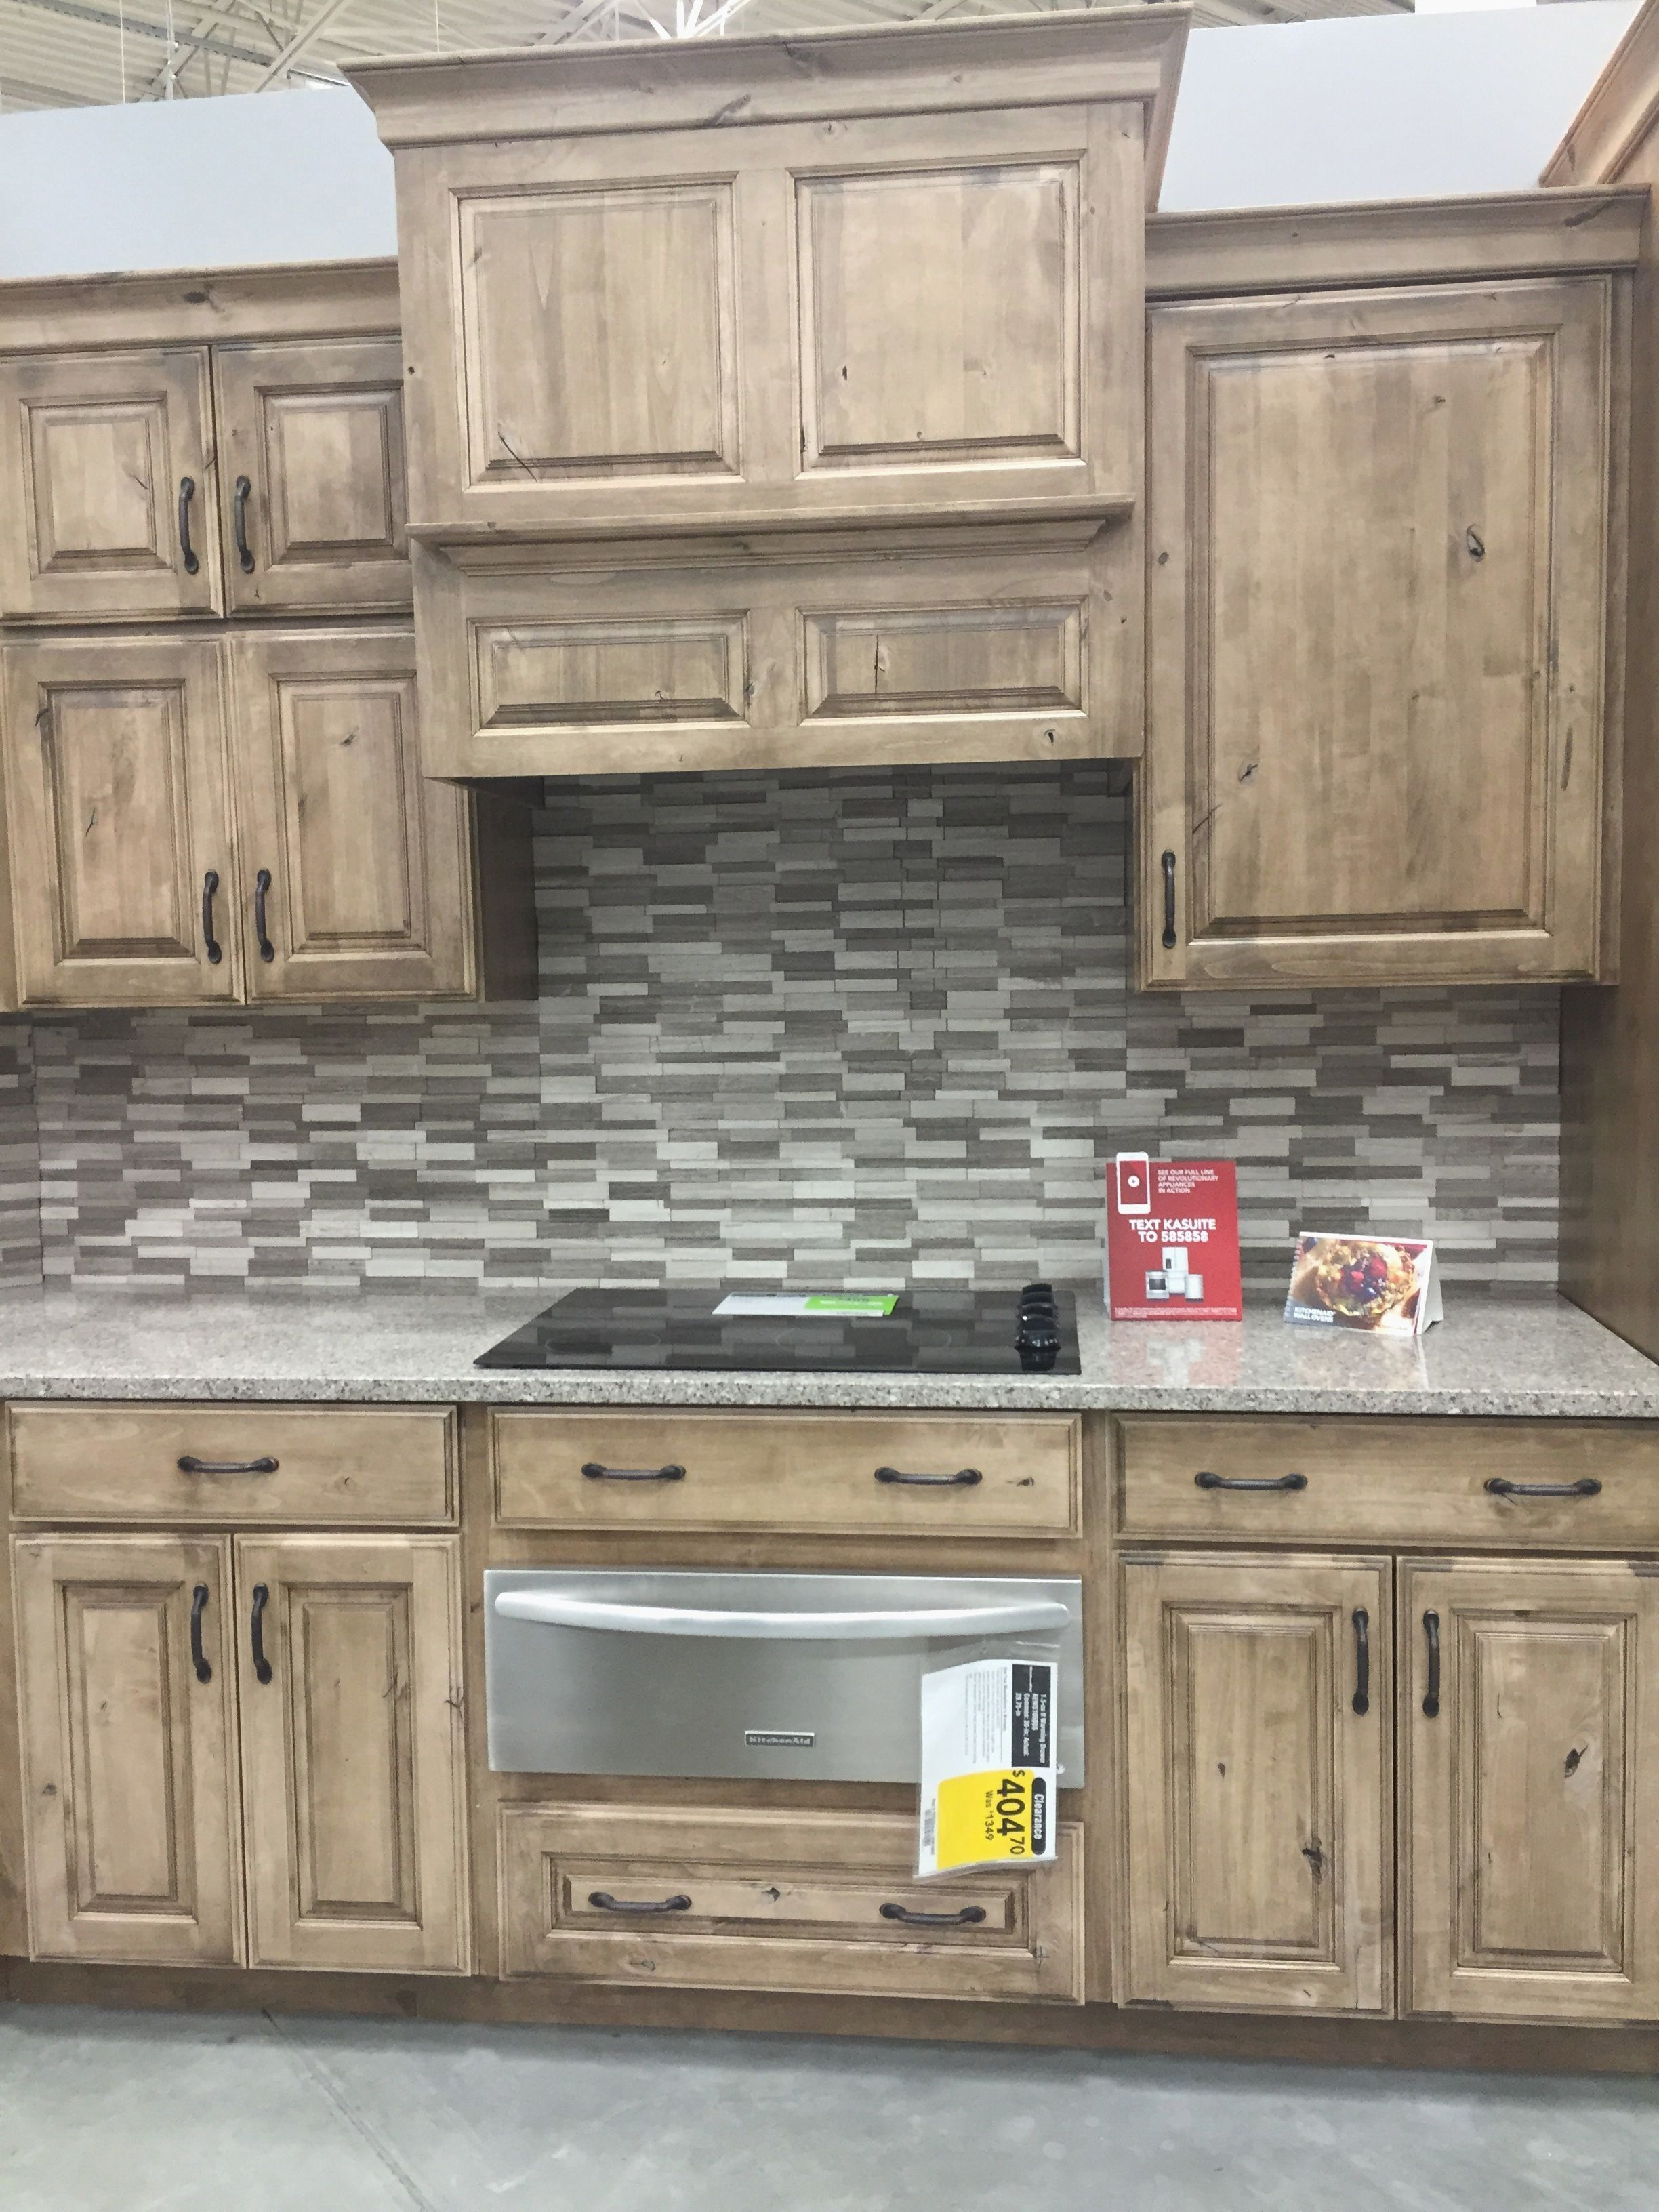 Knotty Pine Kitchen Cabinets Lowes Inspirational Lowes Schuler Cabinetry Knotty Kno In 2020 Custom Kitchen Cabinets Pine Kitchen Cabinets Rustic Kitchen Cabinets